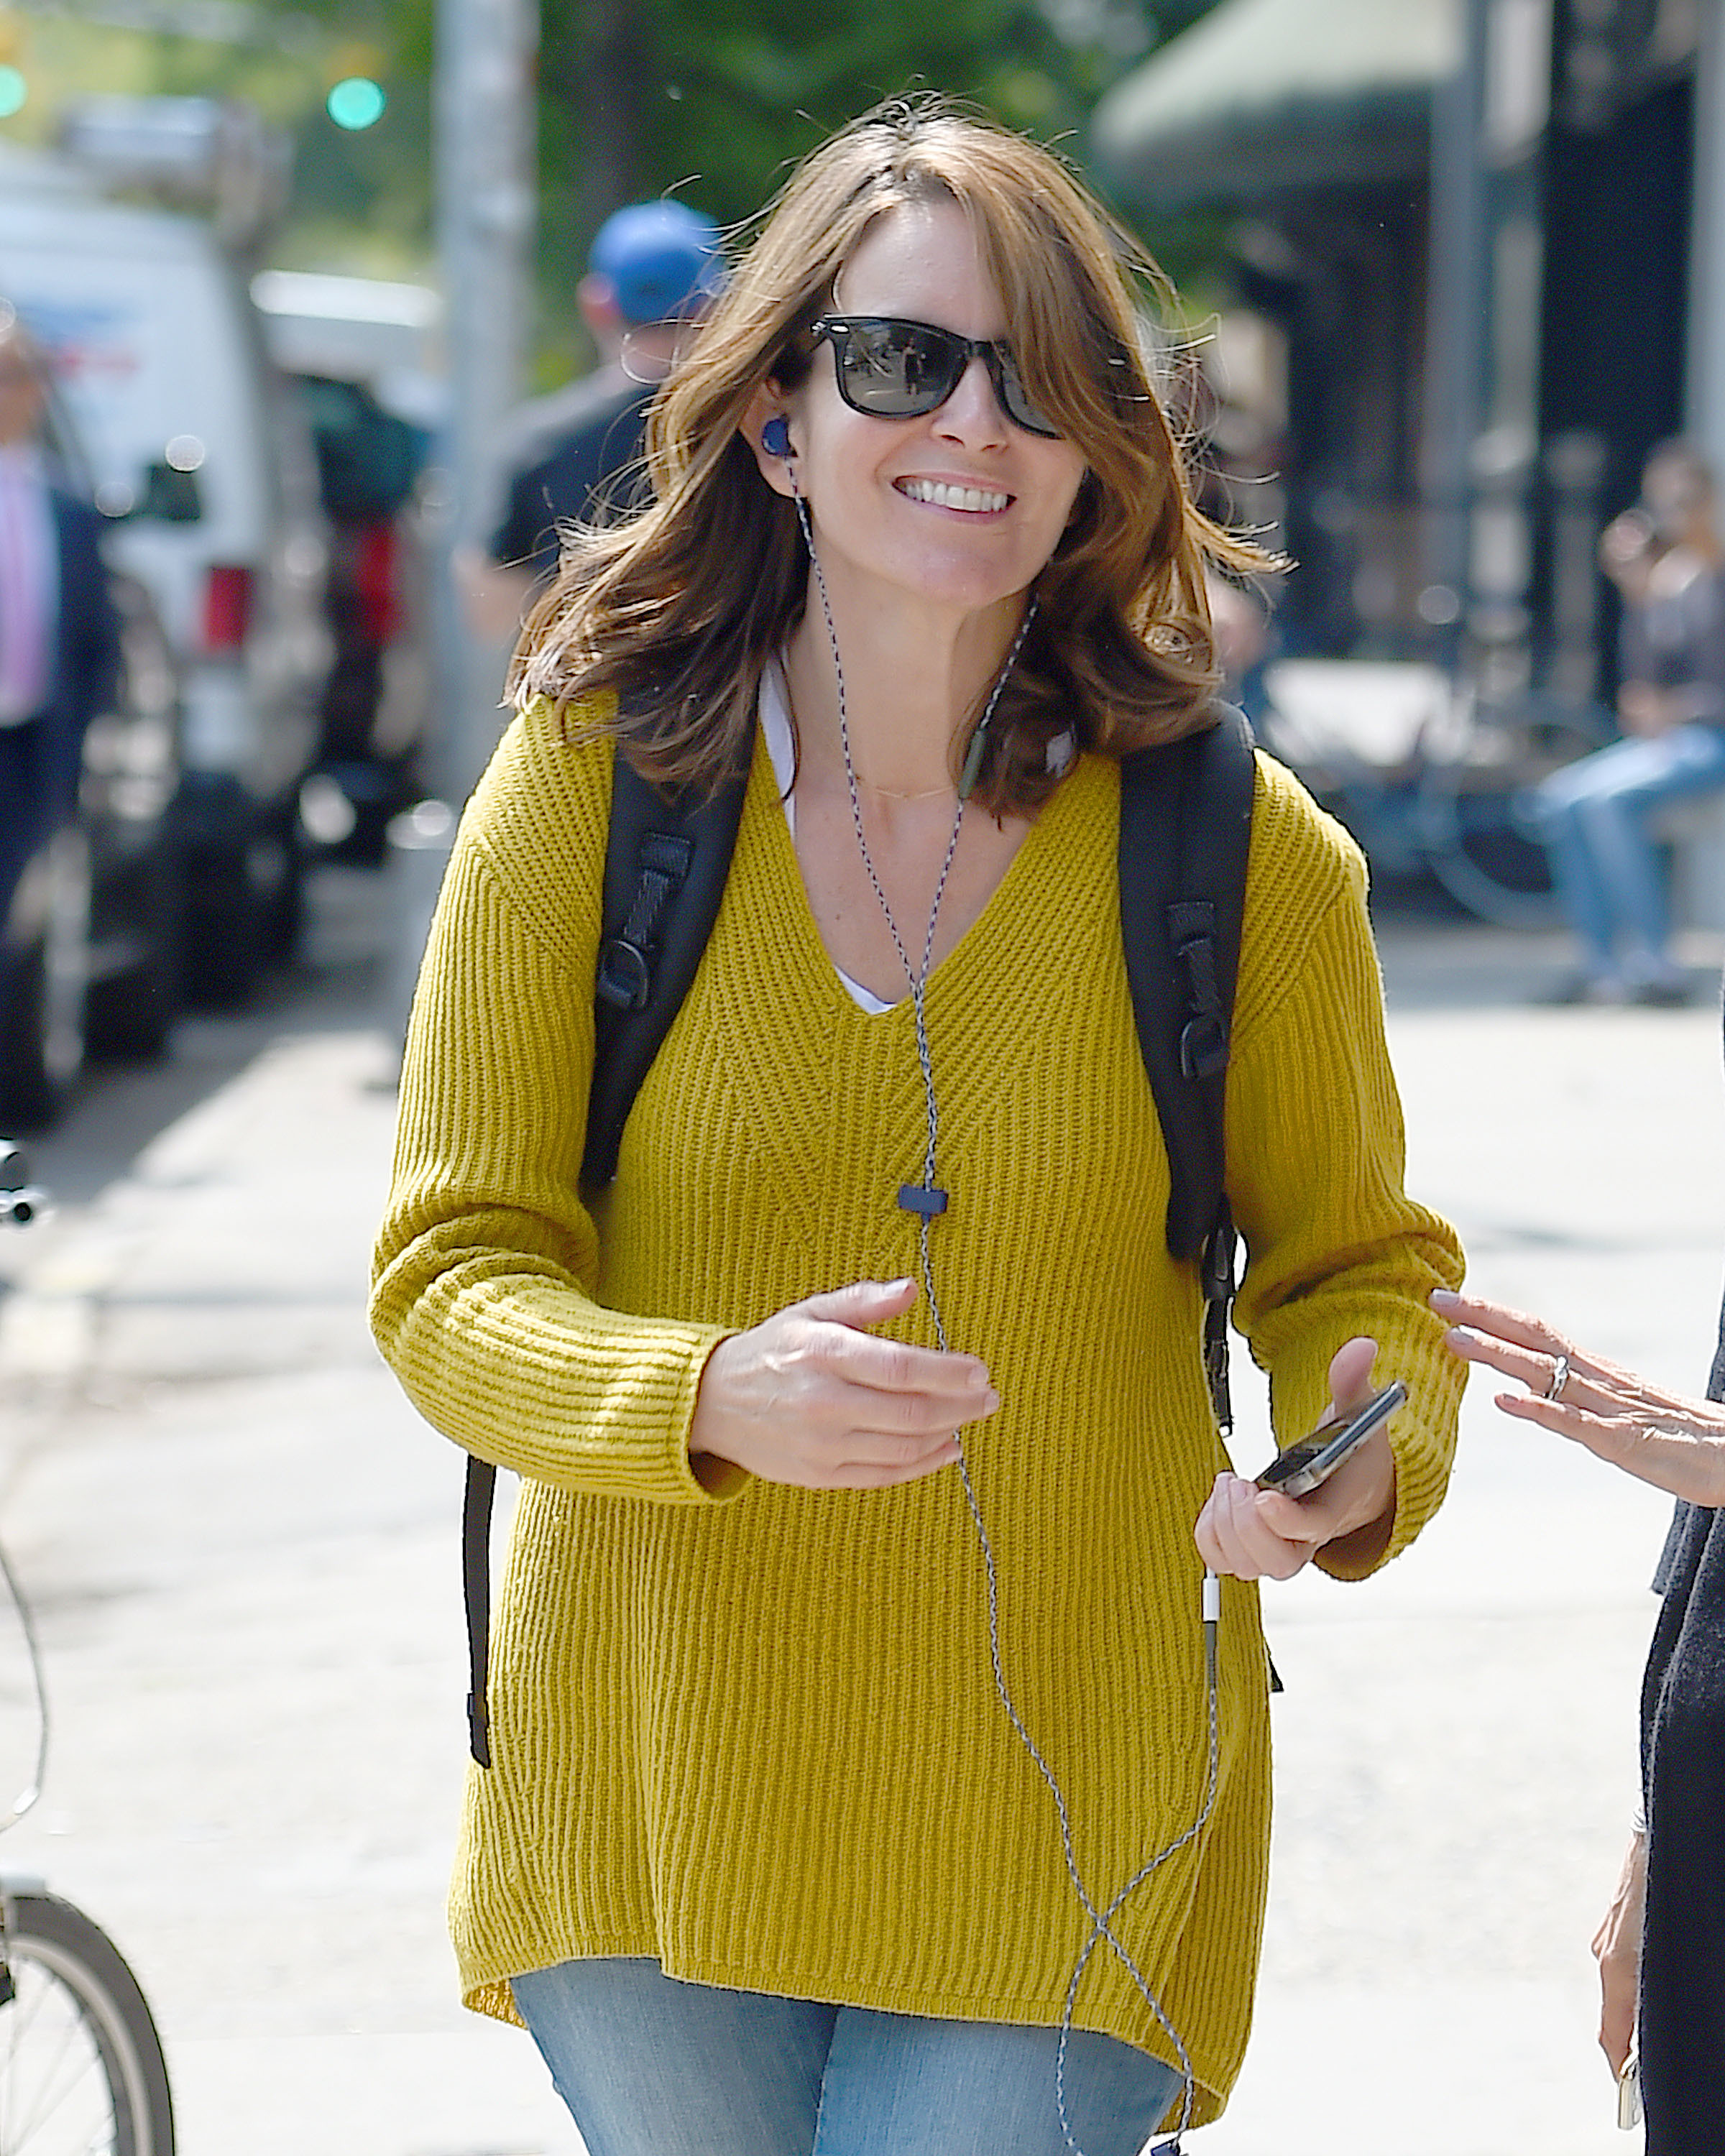 Tina Fey was spotted wearing a mustard sweater in New York City on Sept. 11, 2017.